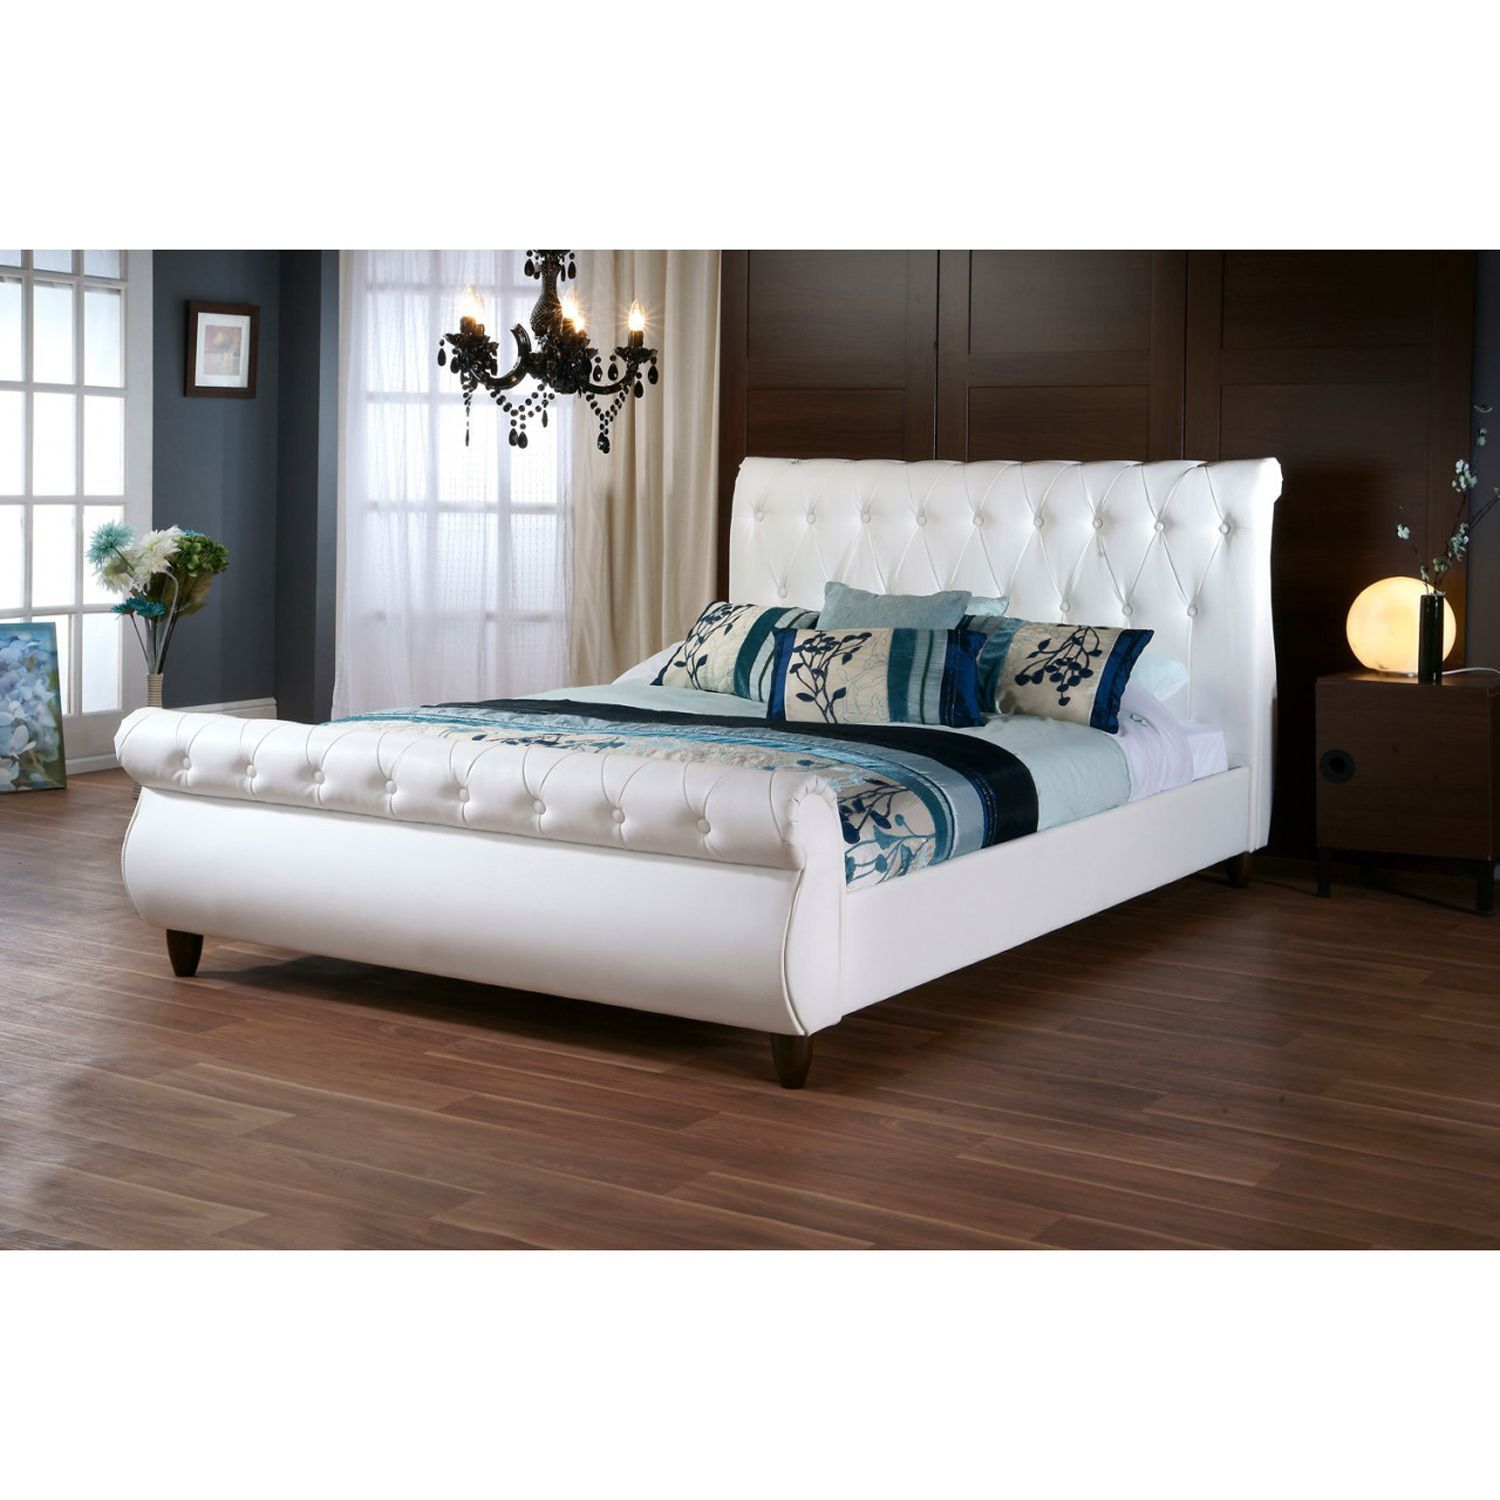 Baxton Studio Ashenhurst White Modern Sleigh Bed with